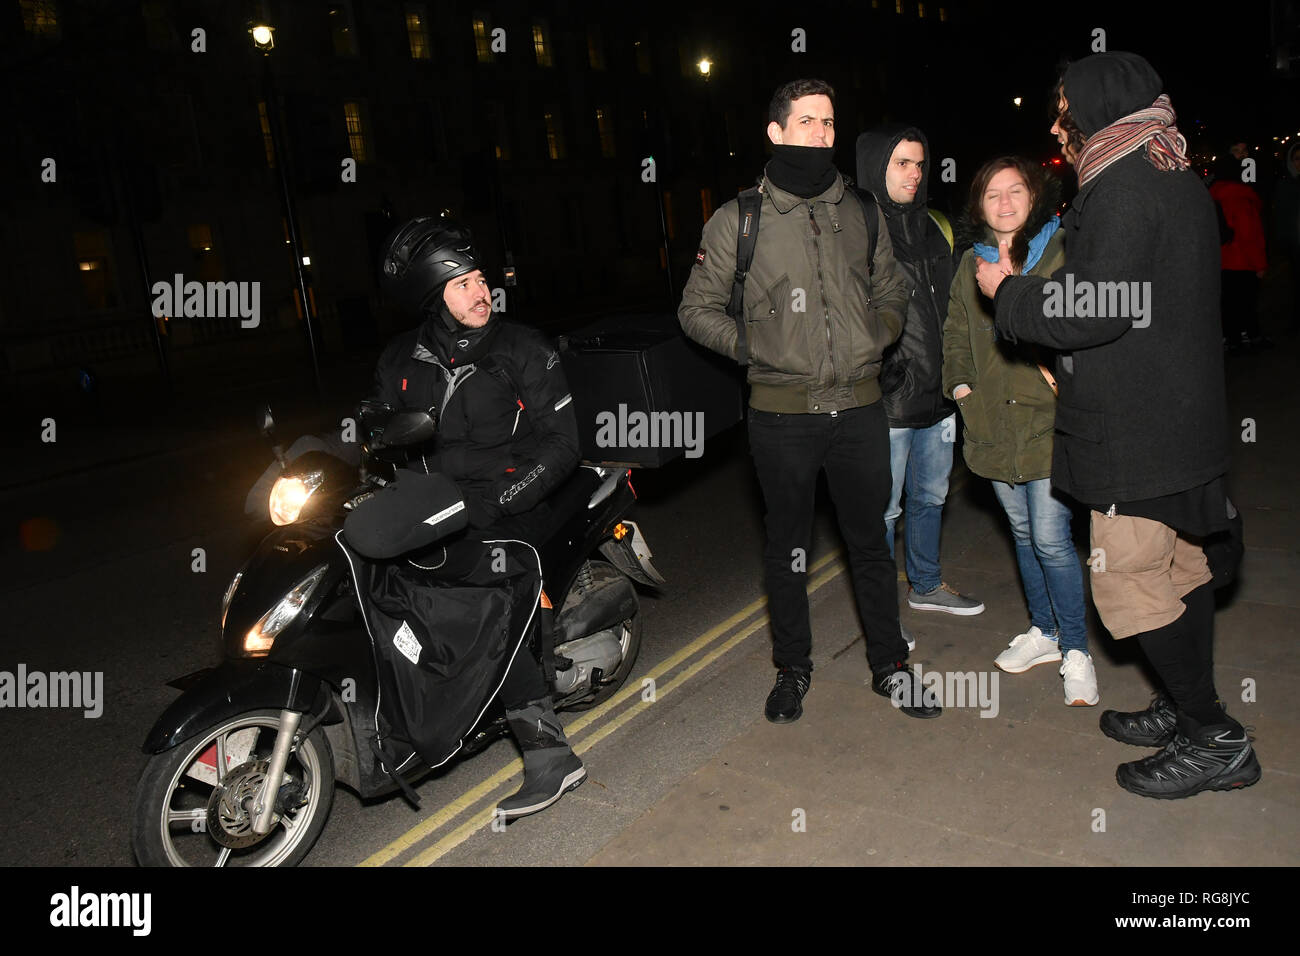 London, UK. 28th January 2019. Only four opposition support shouting slogan during the protest to Reject imperialist coup in Venezuel and the Venezuela patriots and supporters shout back you tratior opposite Downing Street, on 28 January 2019, London, UK. Credit: Picture Capital/Alamy Live News - Stock Image